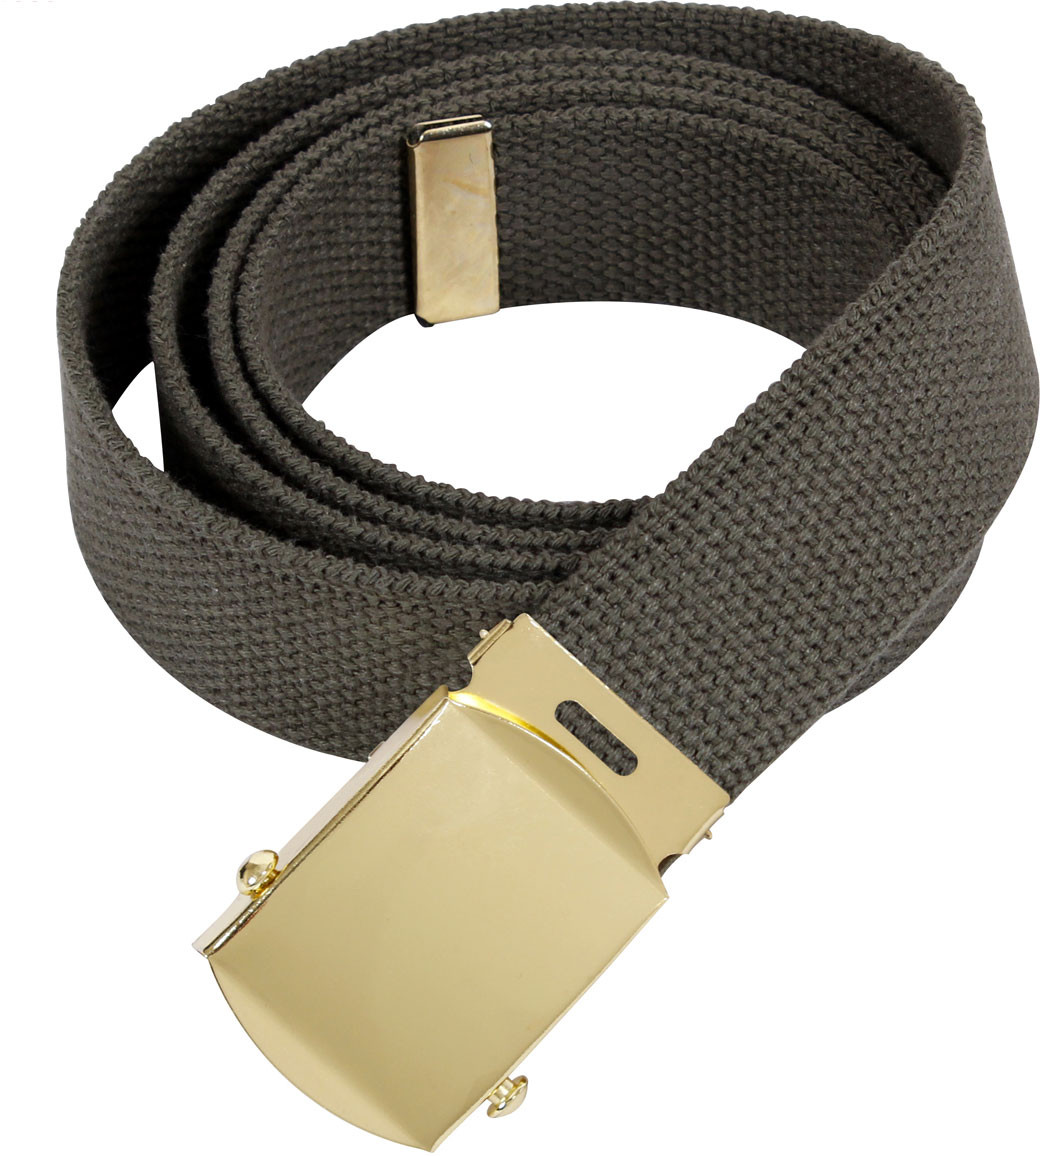 Olive Drab Military Web Belt with Brass Buckle 4a3240679a1